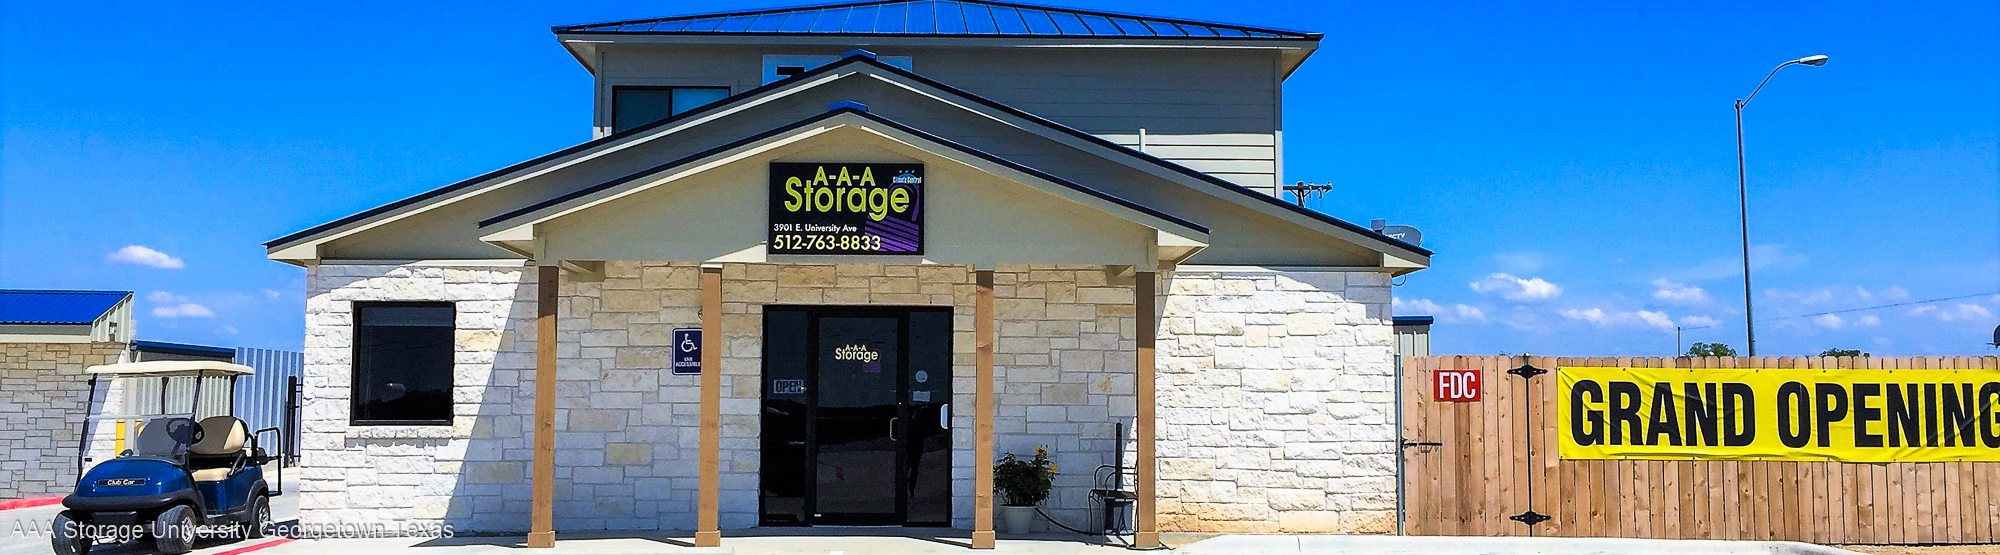 Georgetown Texas storage near me